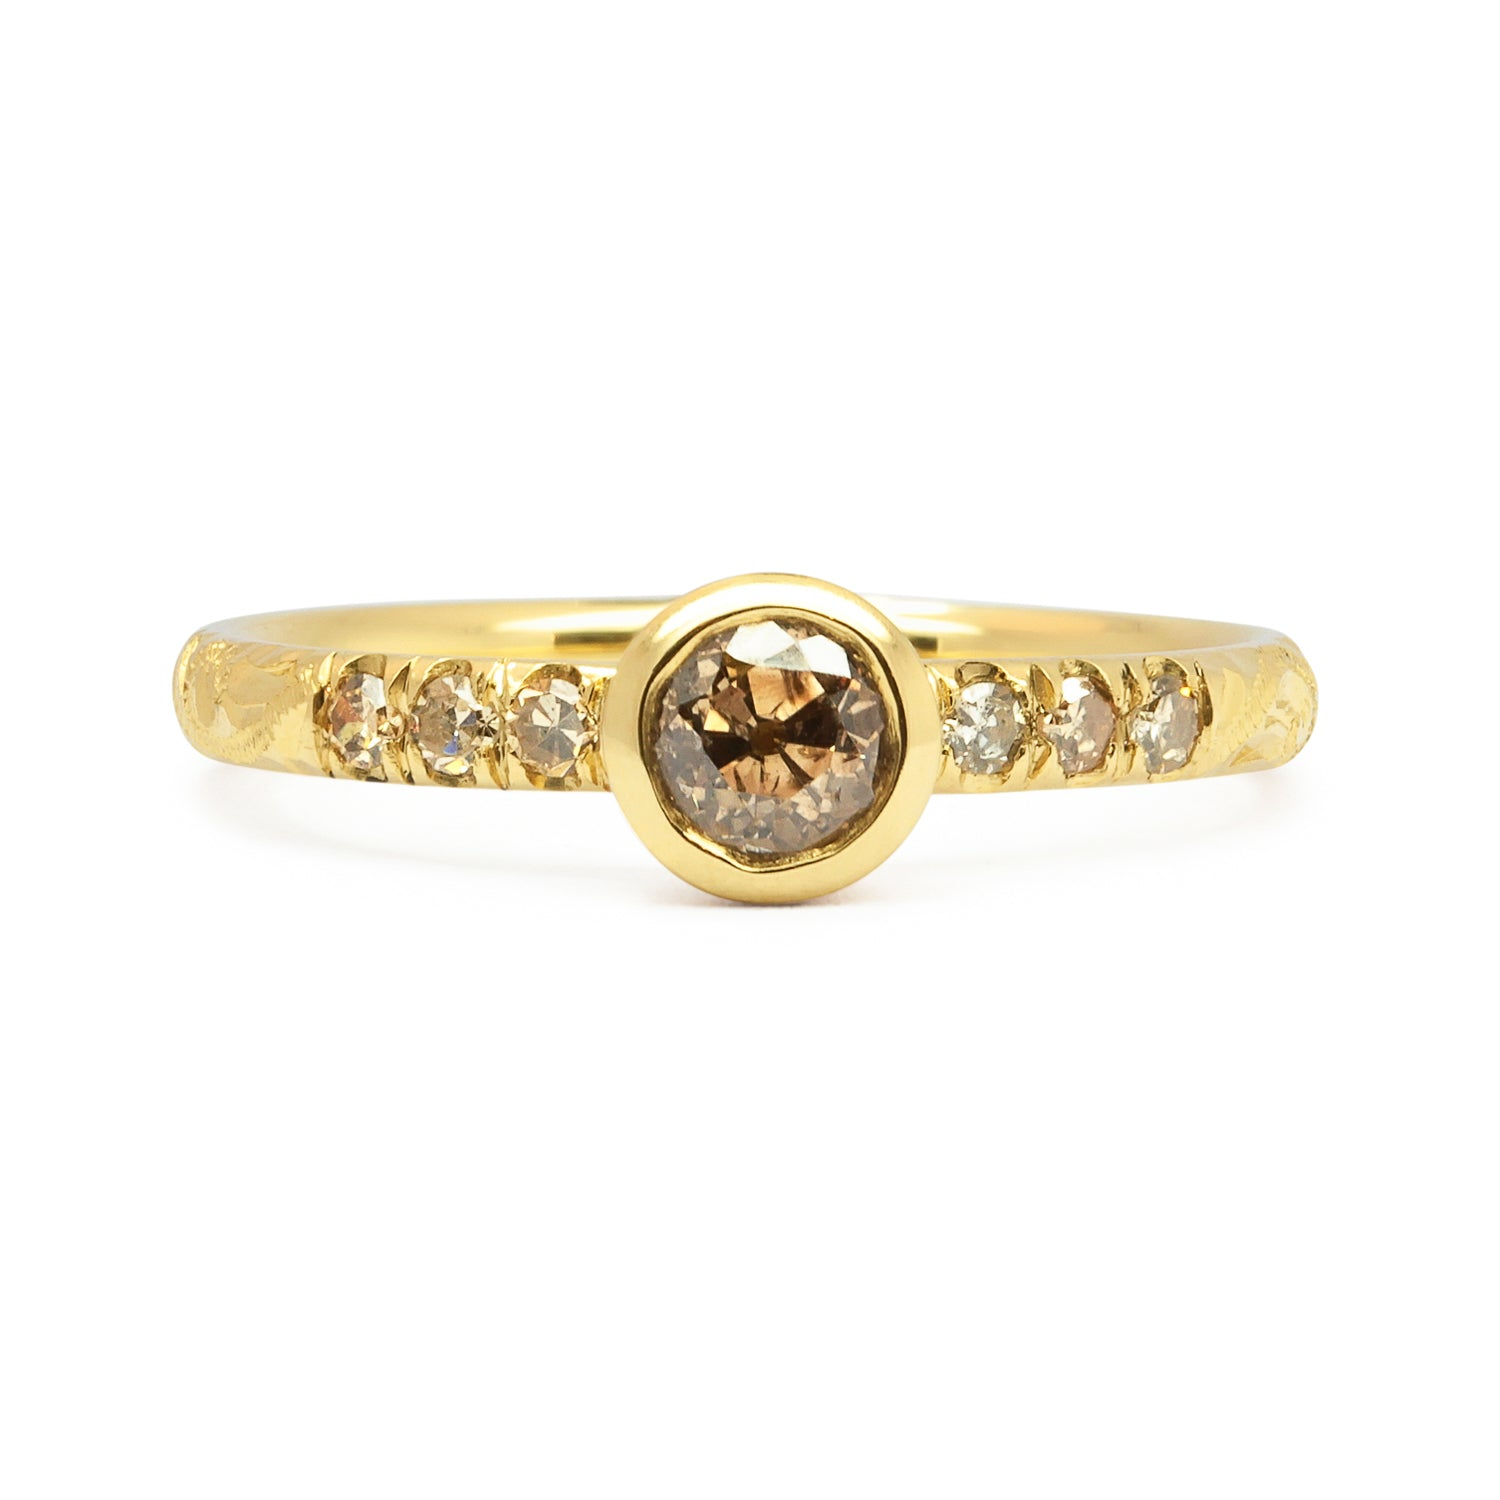 Hebe Antique Cognac Diamond Engagement Ring, Ethical Gold